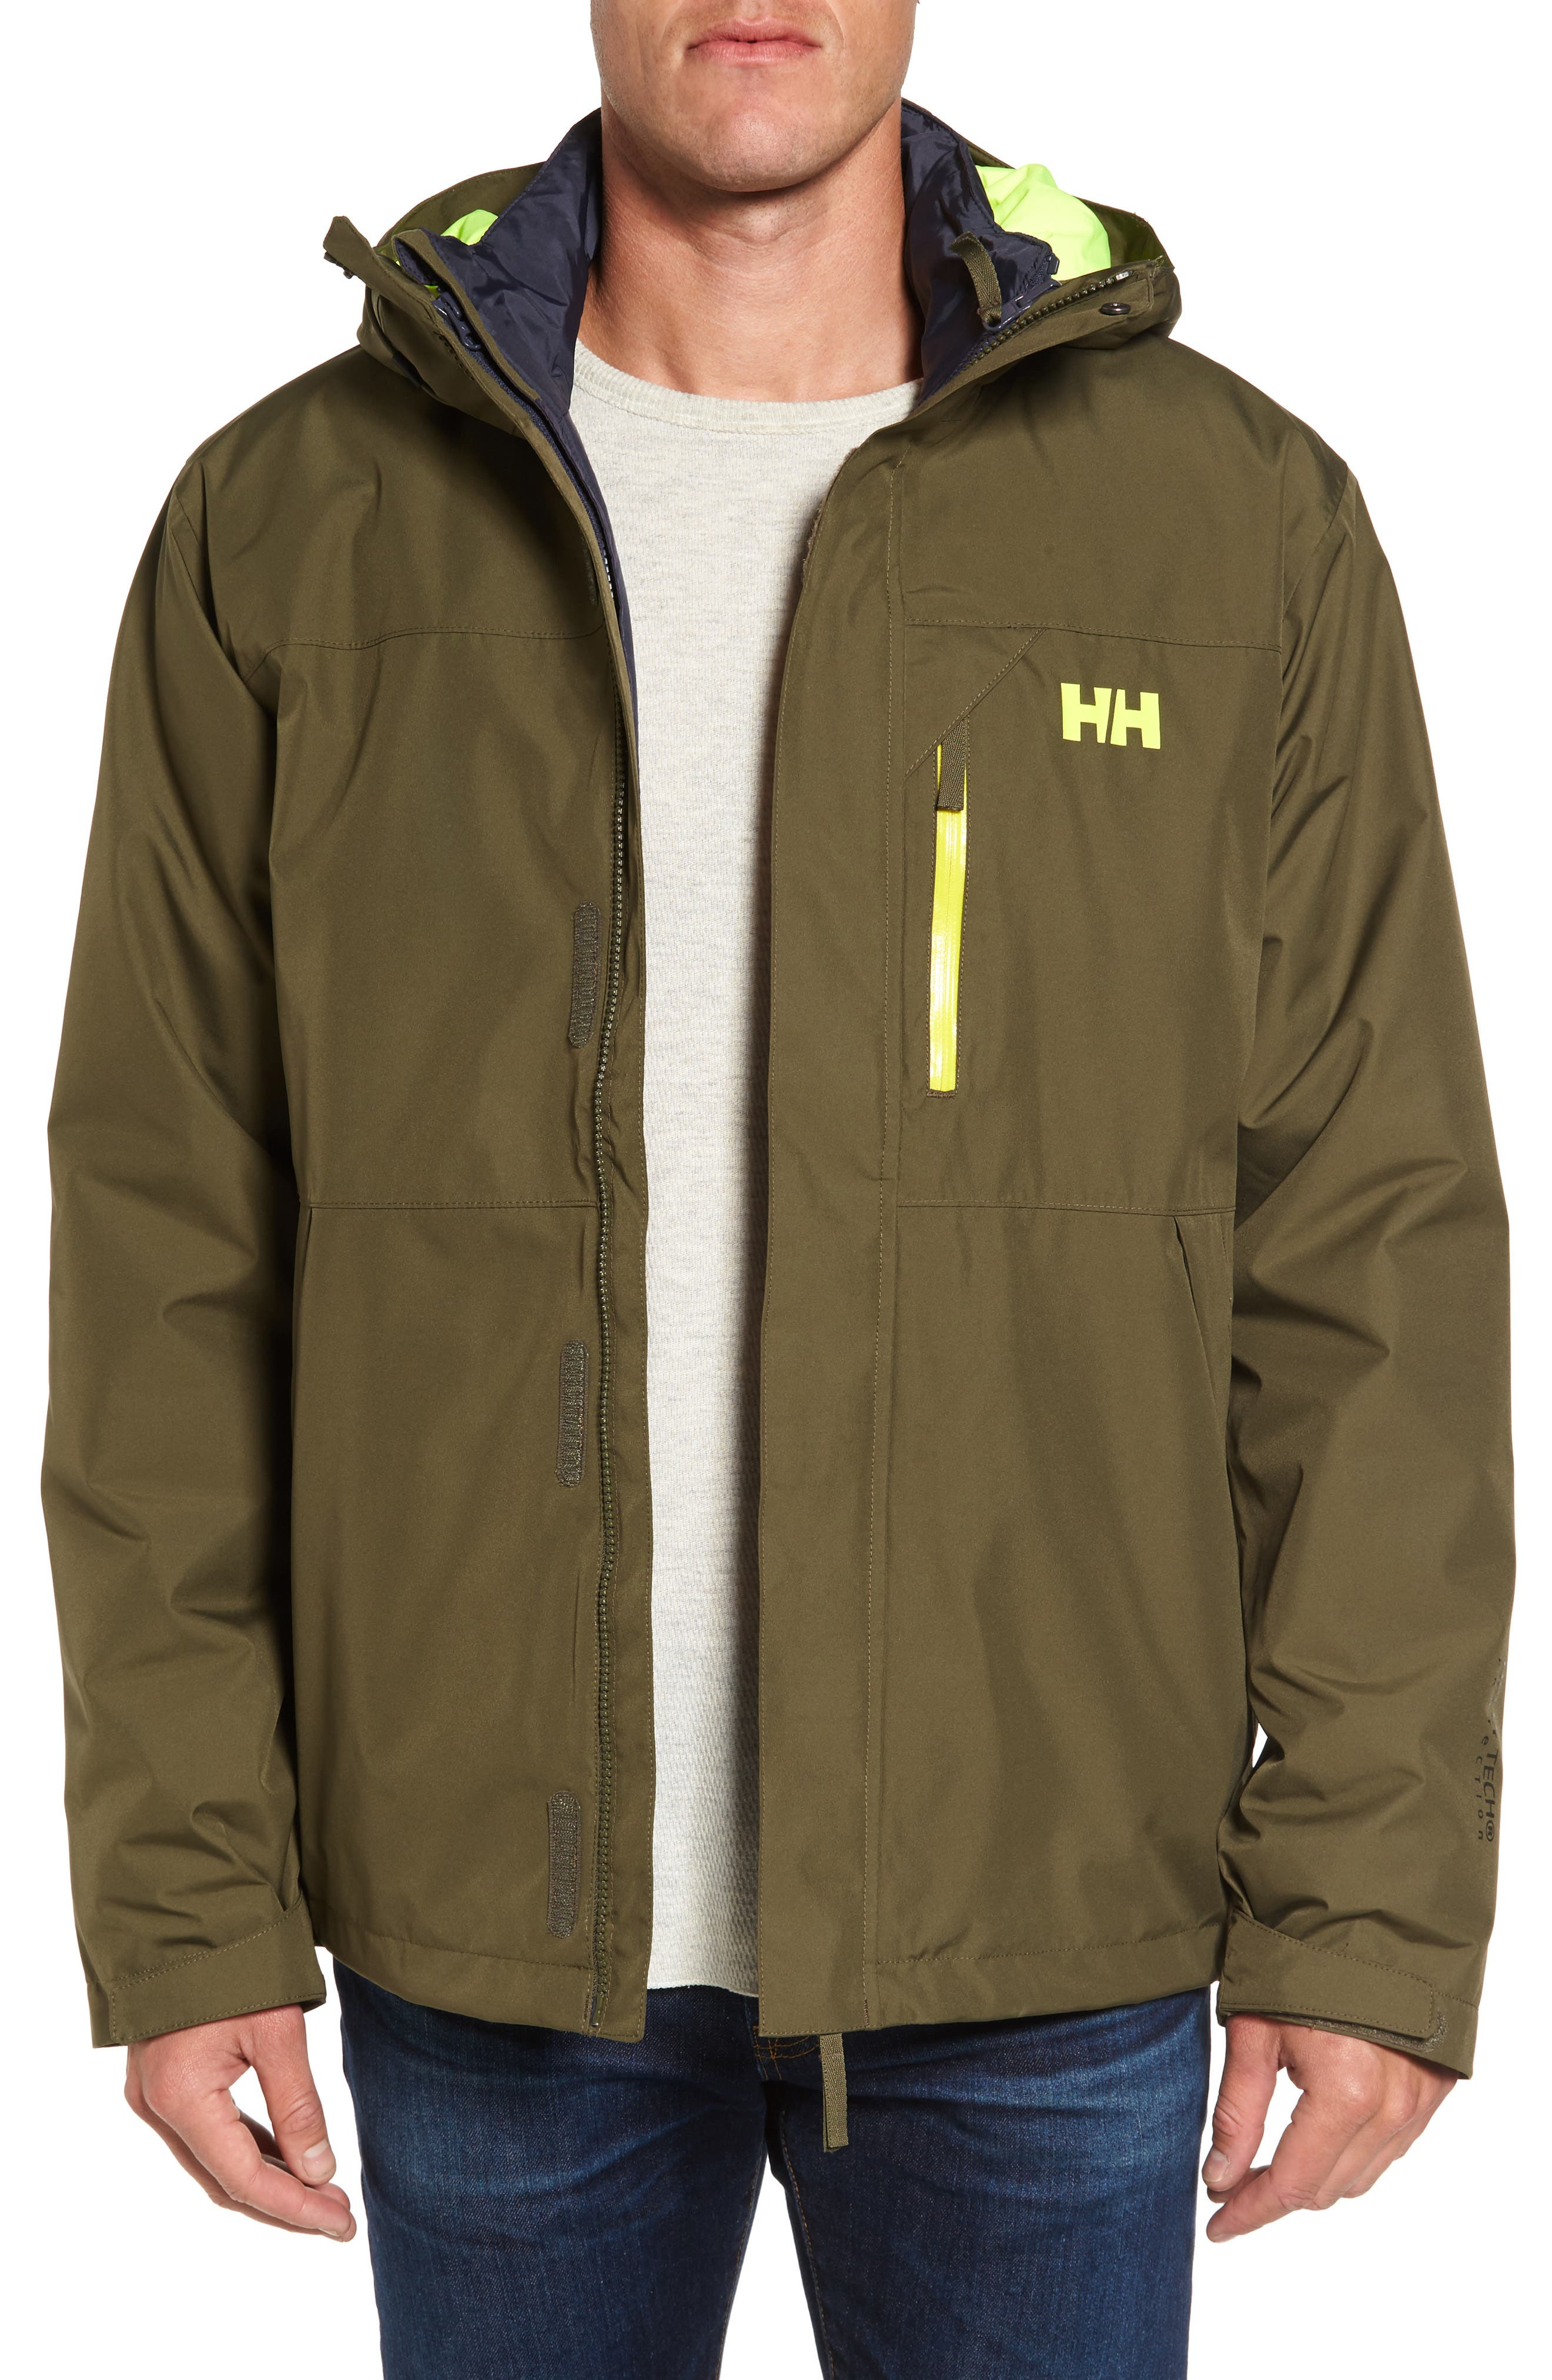 Alternate Image 1 Selected - Helly Hansen Squamish 3-in-1 Water Repellent Hooded Jacket